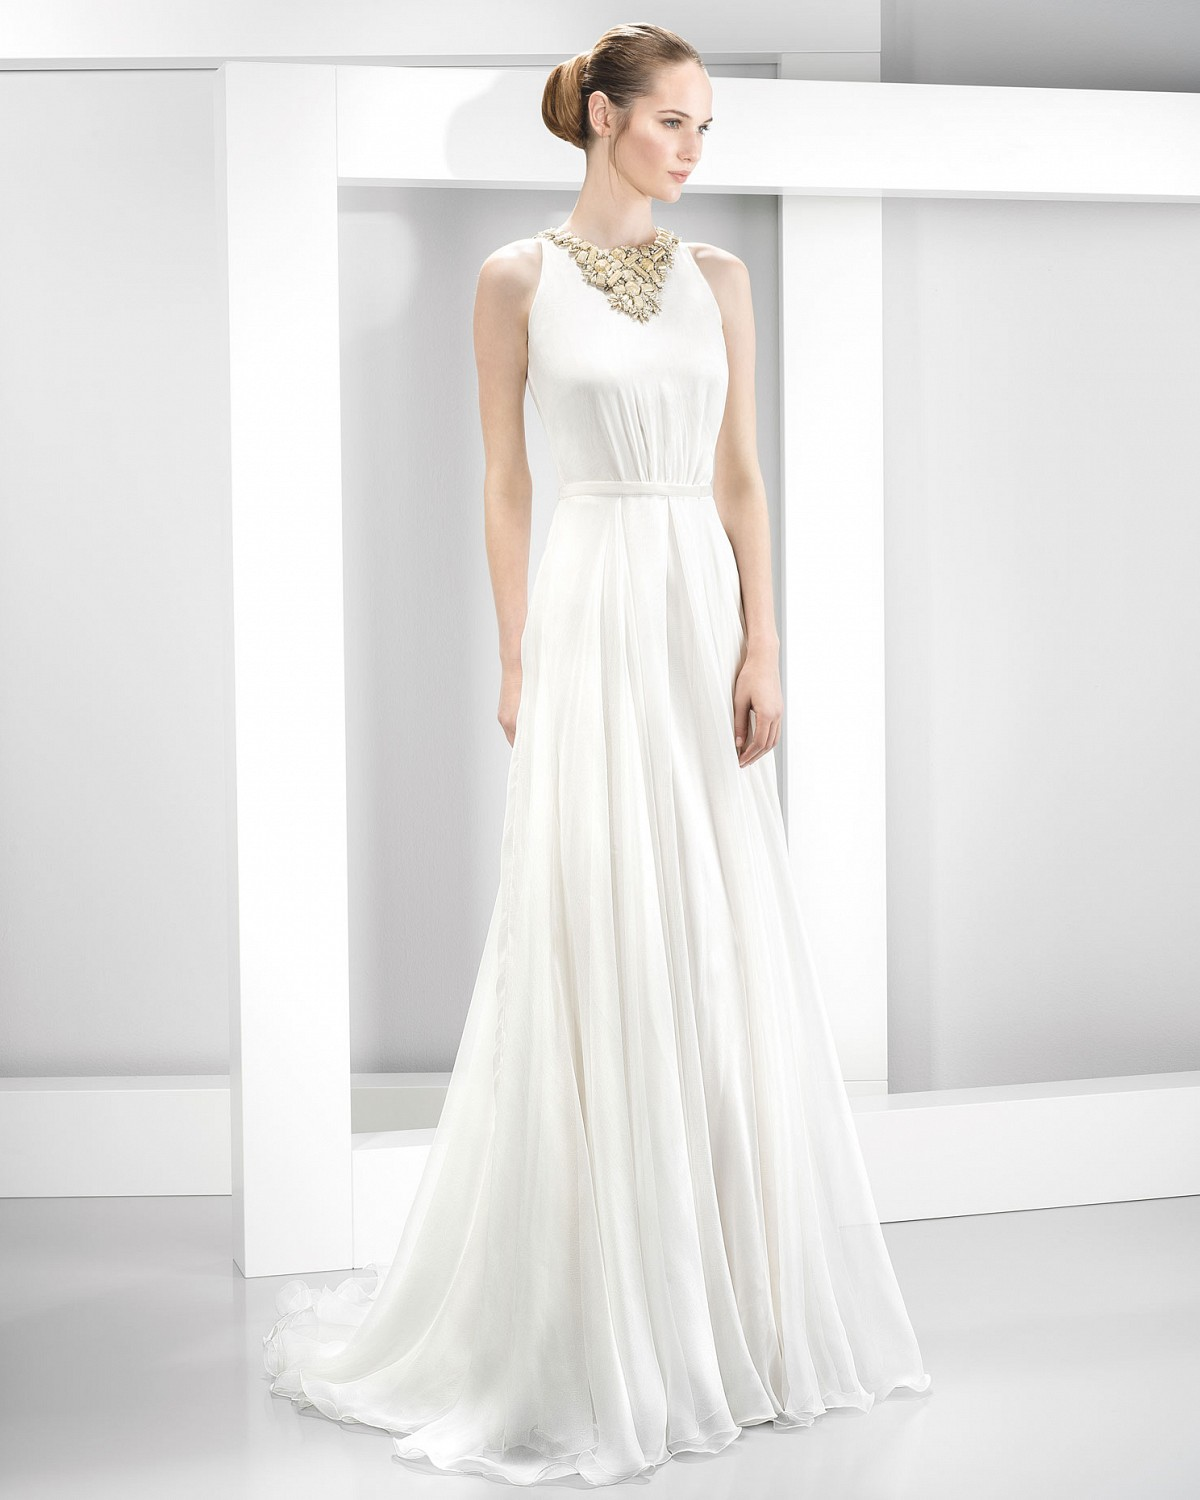 Sleeveless Beaded Neck A-line Stretch Satin Wedding Dress